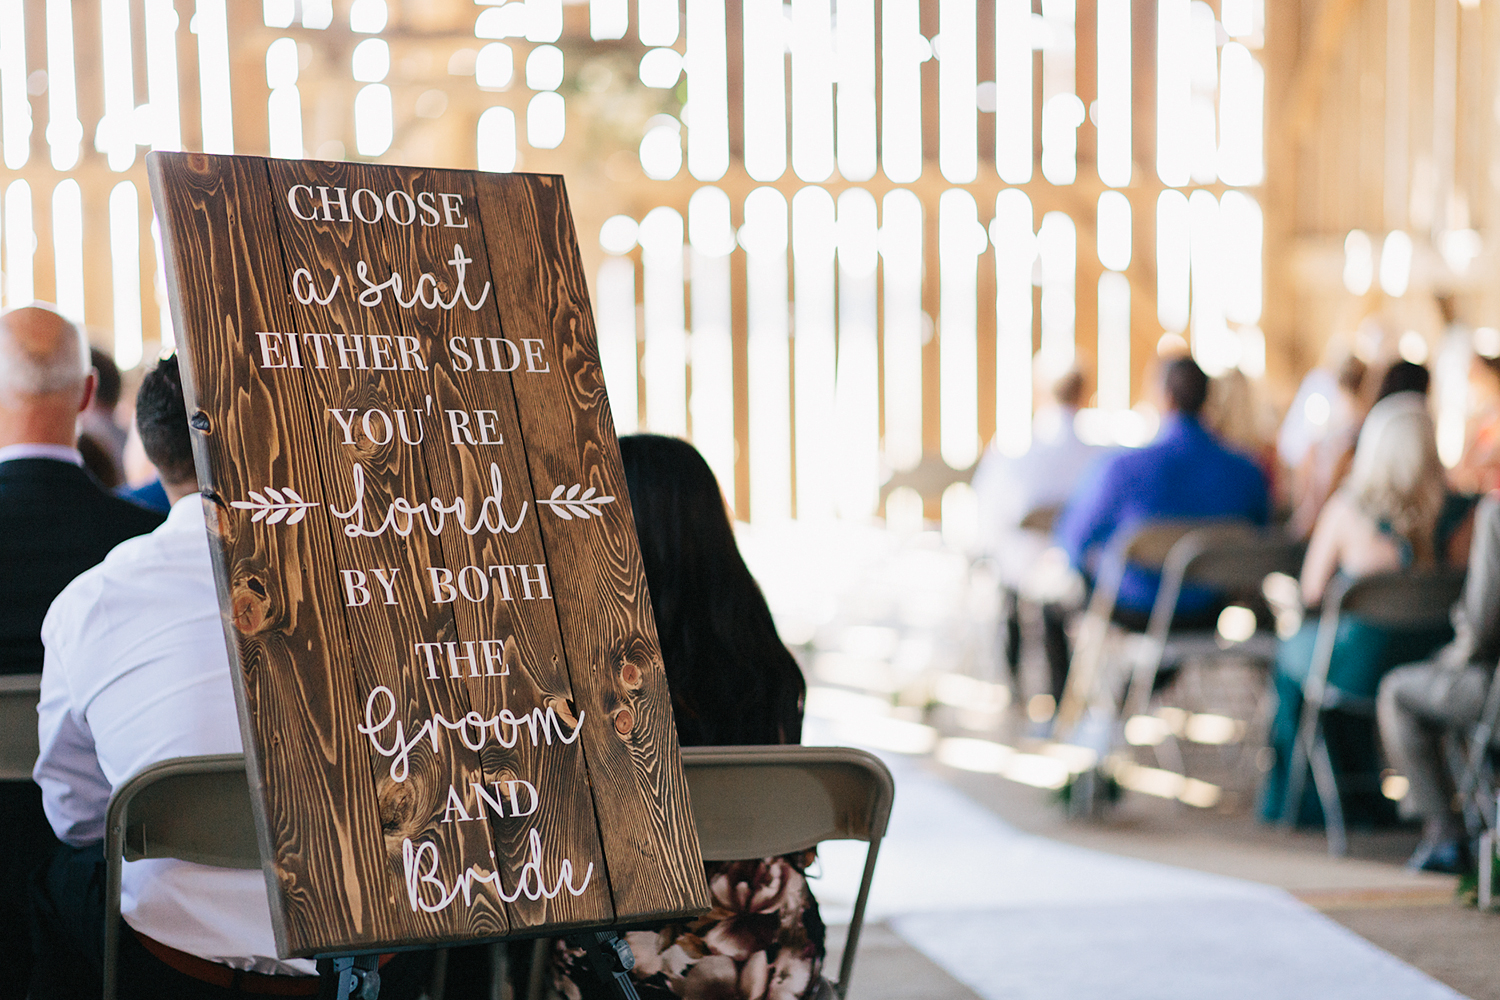 Photojournalistic-Wedding-Photographers-in-Toronto-Candid-Natural-Dowswell-Barn-Wedding-Rustic-GTA-Muskoka-Farm-details-ceremony-cute-rustic-seating-sign.jpg